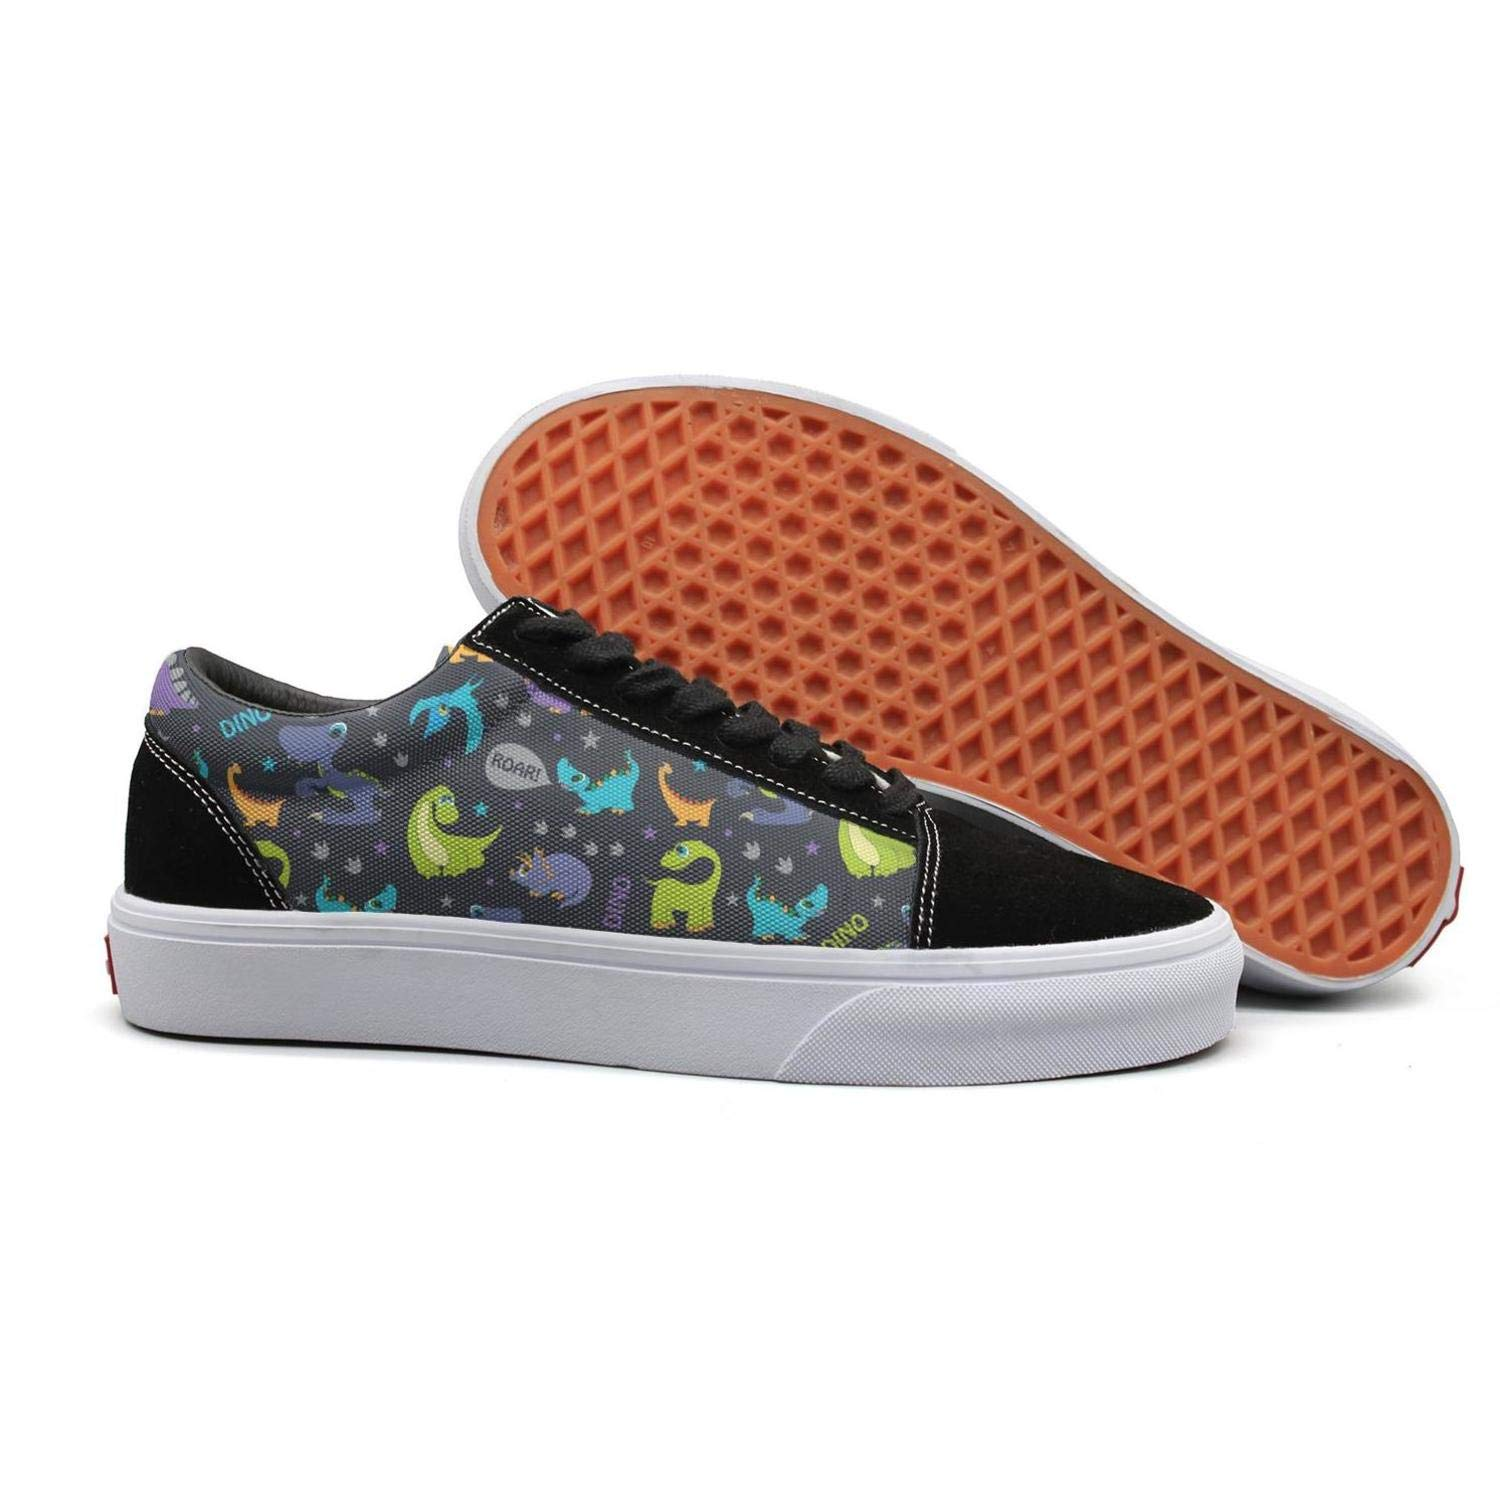 Dinosaurs Roaring Cutest Pattern Lace Up Sneakers Canvas Skate Shoes for Women Lightweight